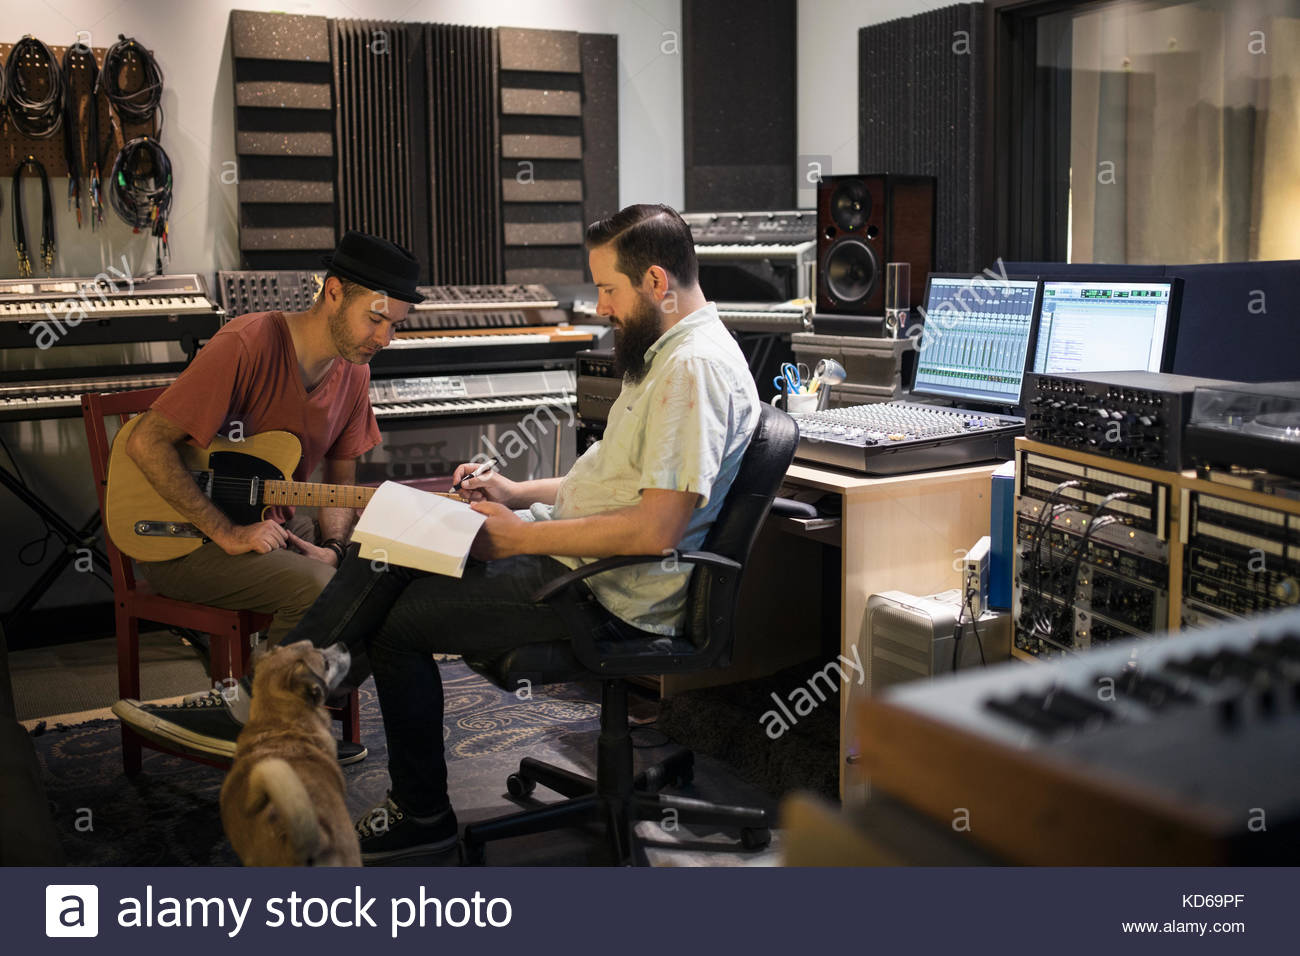 Male music producer and guitarist meeting in recording studio - Stock Image